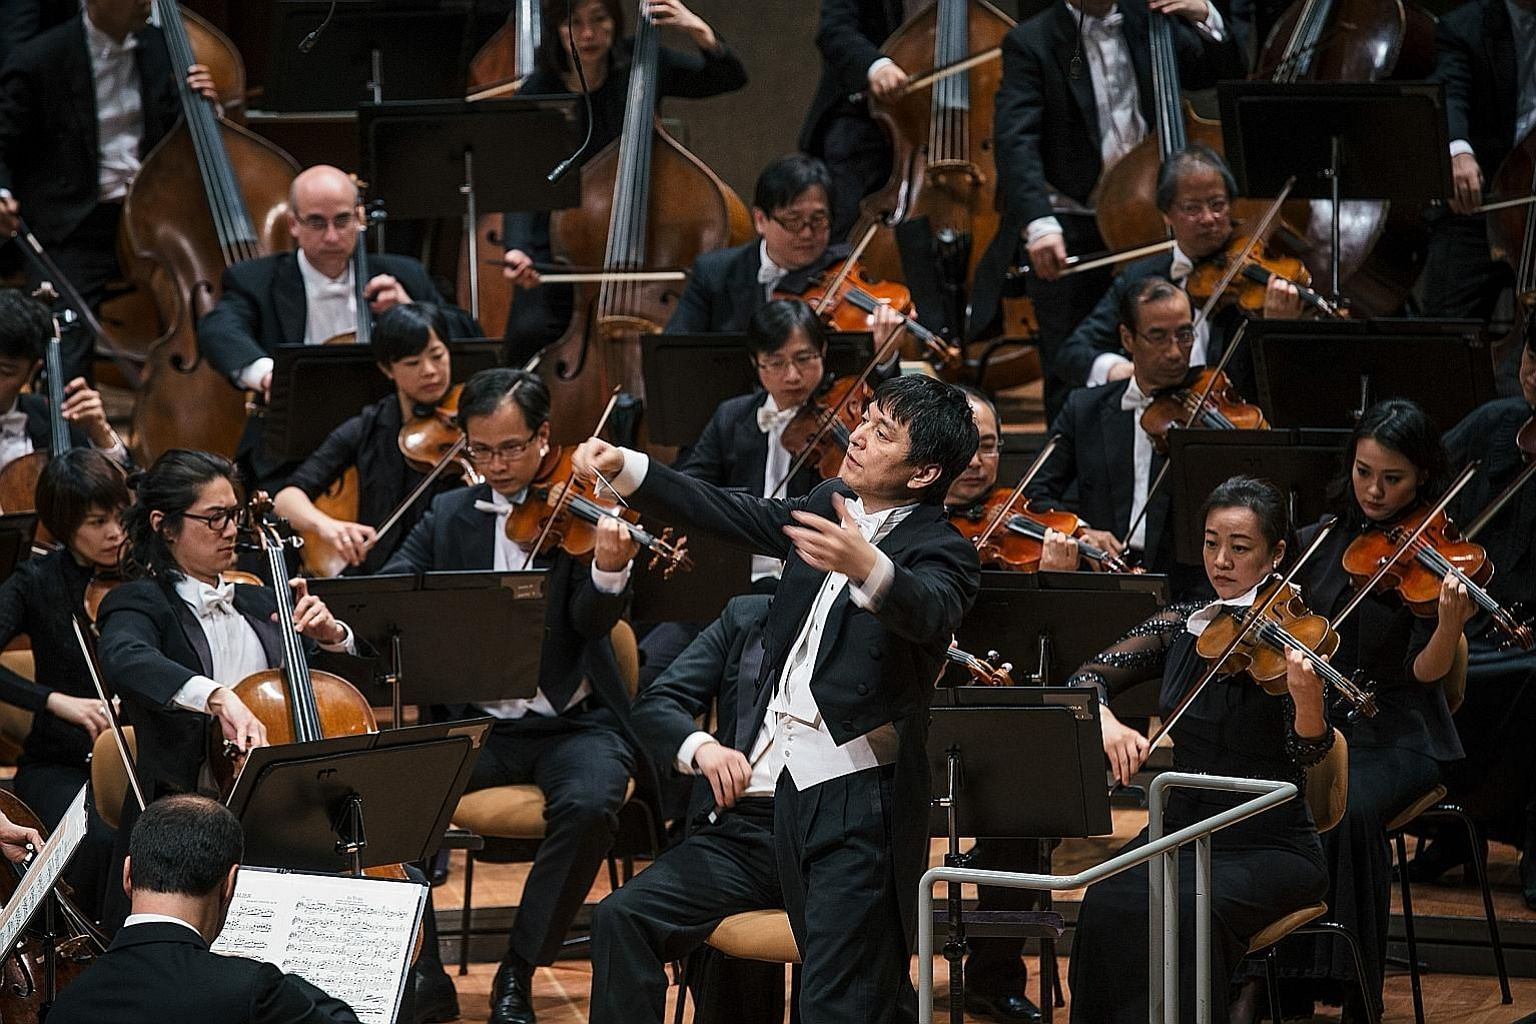 In a photo taken in 2016, conductor laureate Lan Shui is seen leading the Singapore Symphony Orchestra during a performance in Berlin.